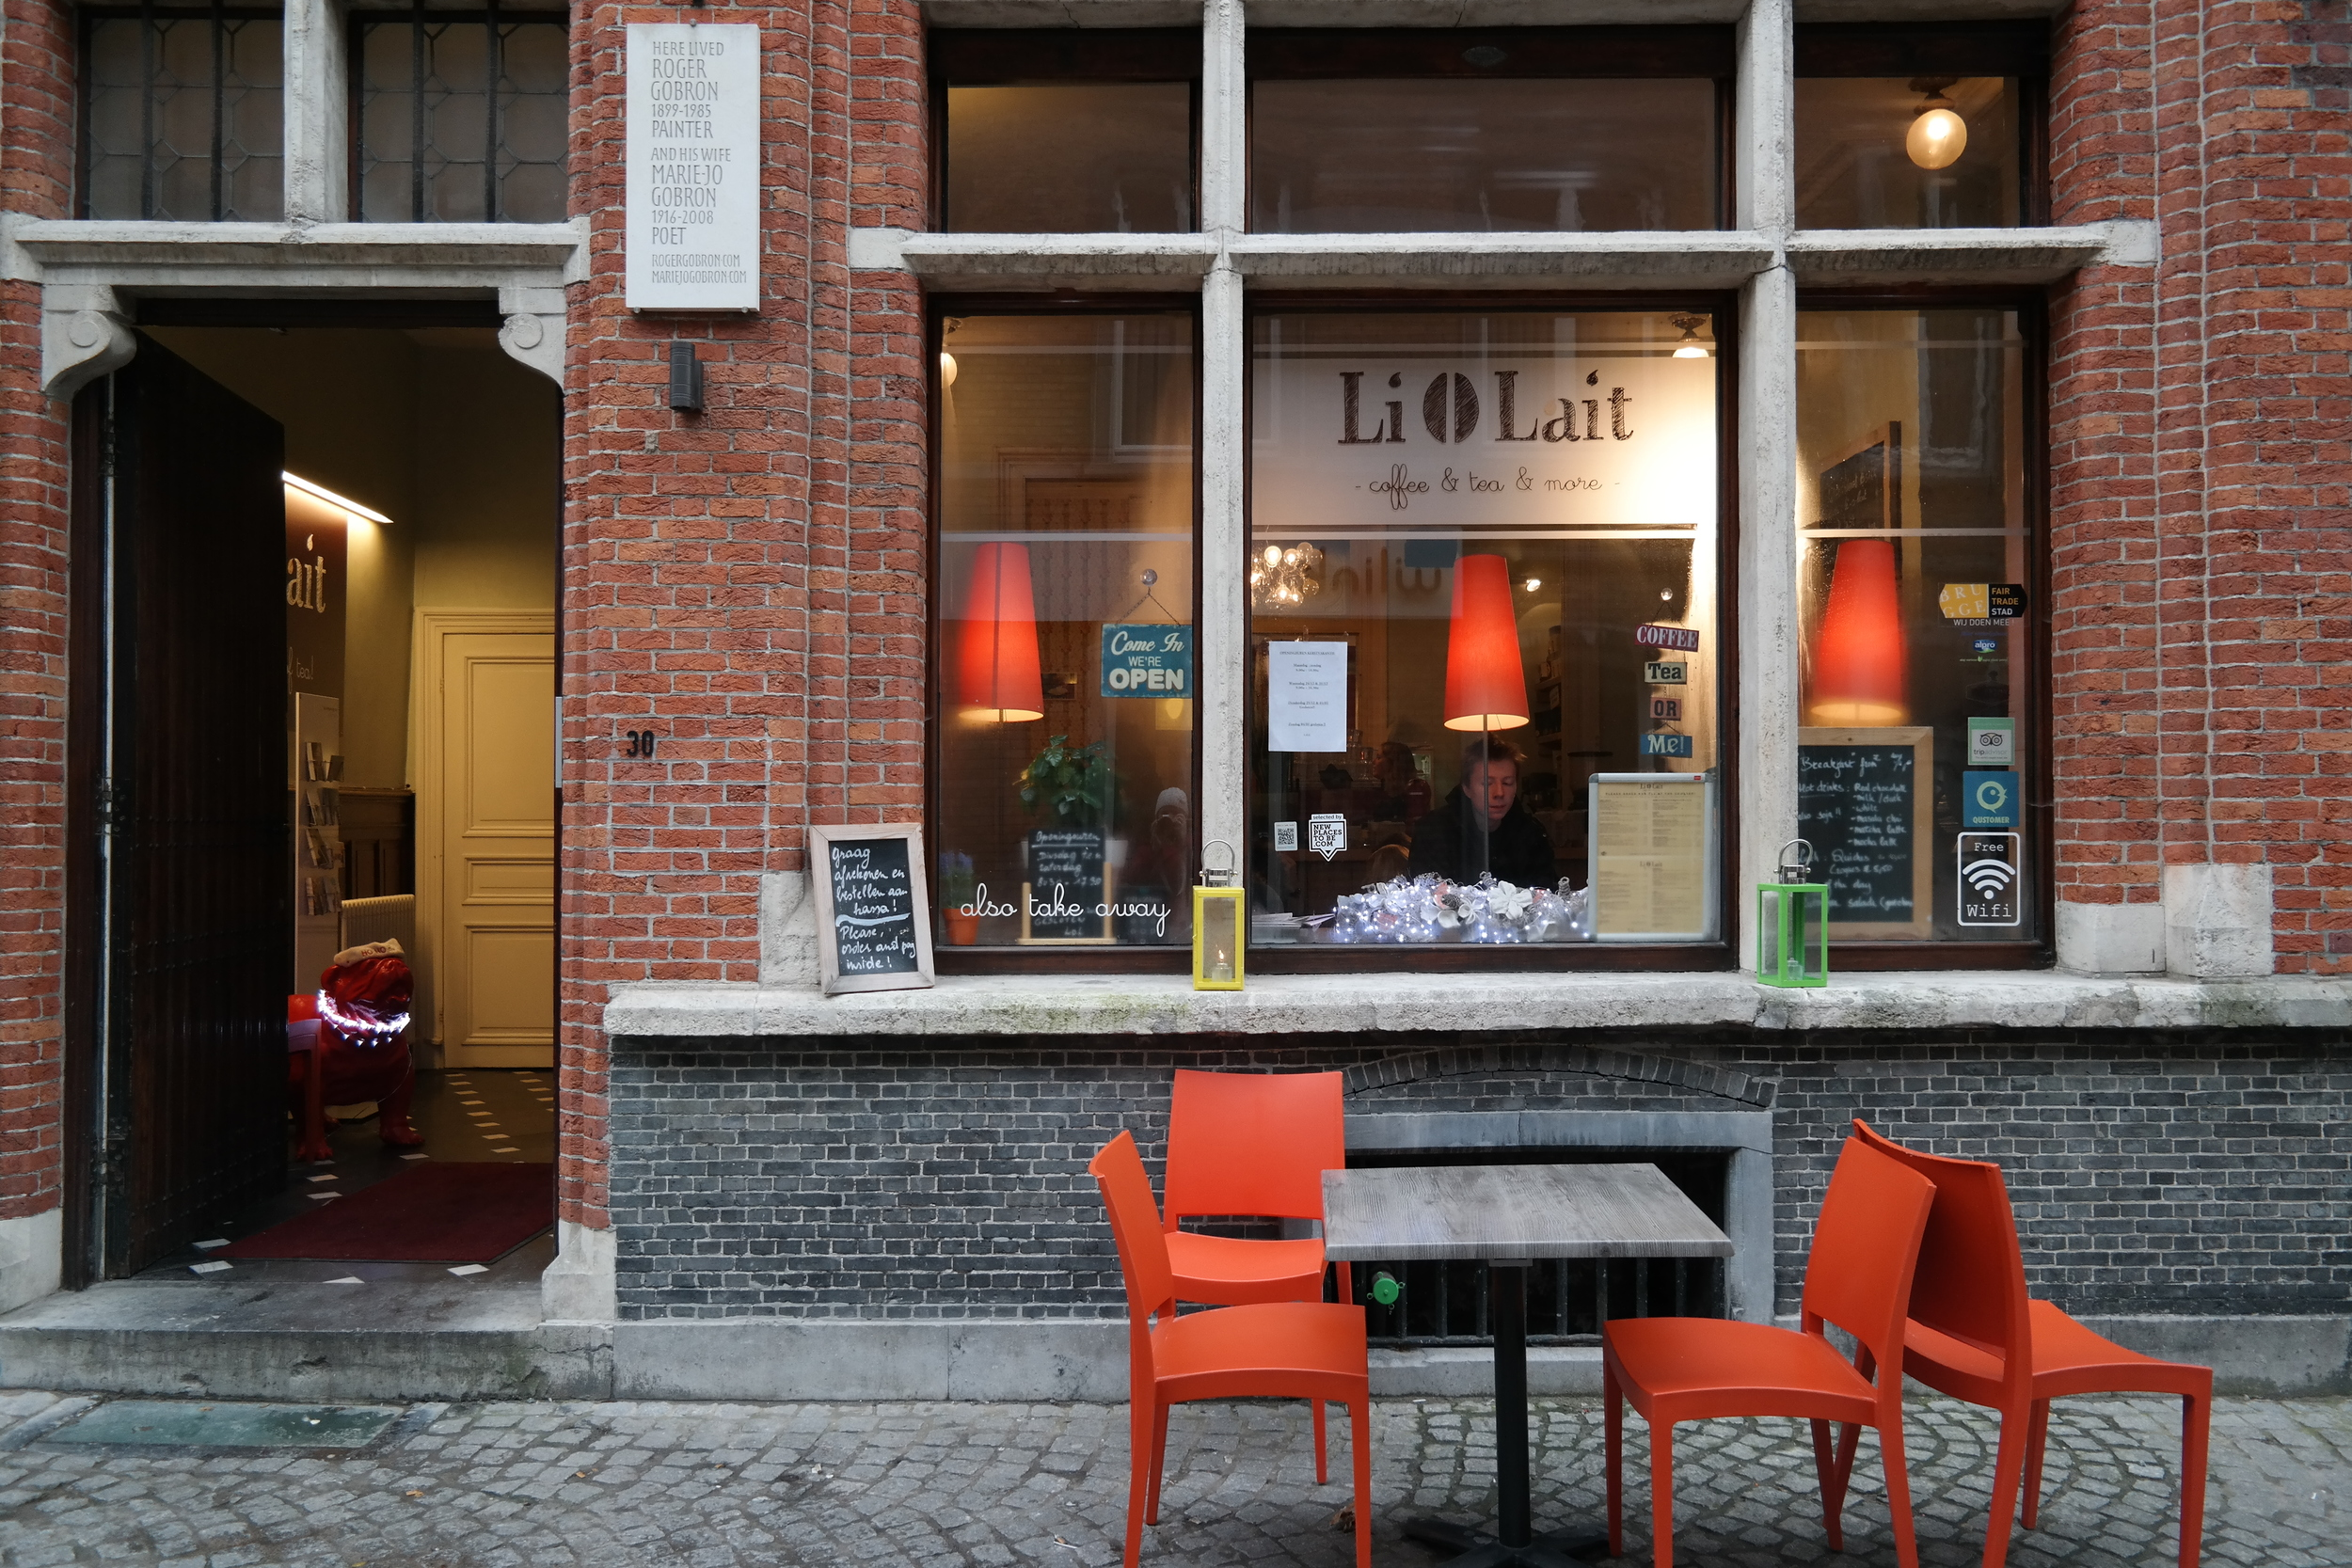 We'd recommend LiOLait if you're looking for a cozy breakfast, lunch, or afternoon coffee spot. Their food was delicious. And we were once again shocked by how well shop owners and workers speak English in Belgium.